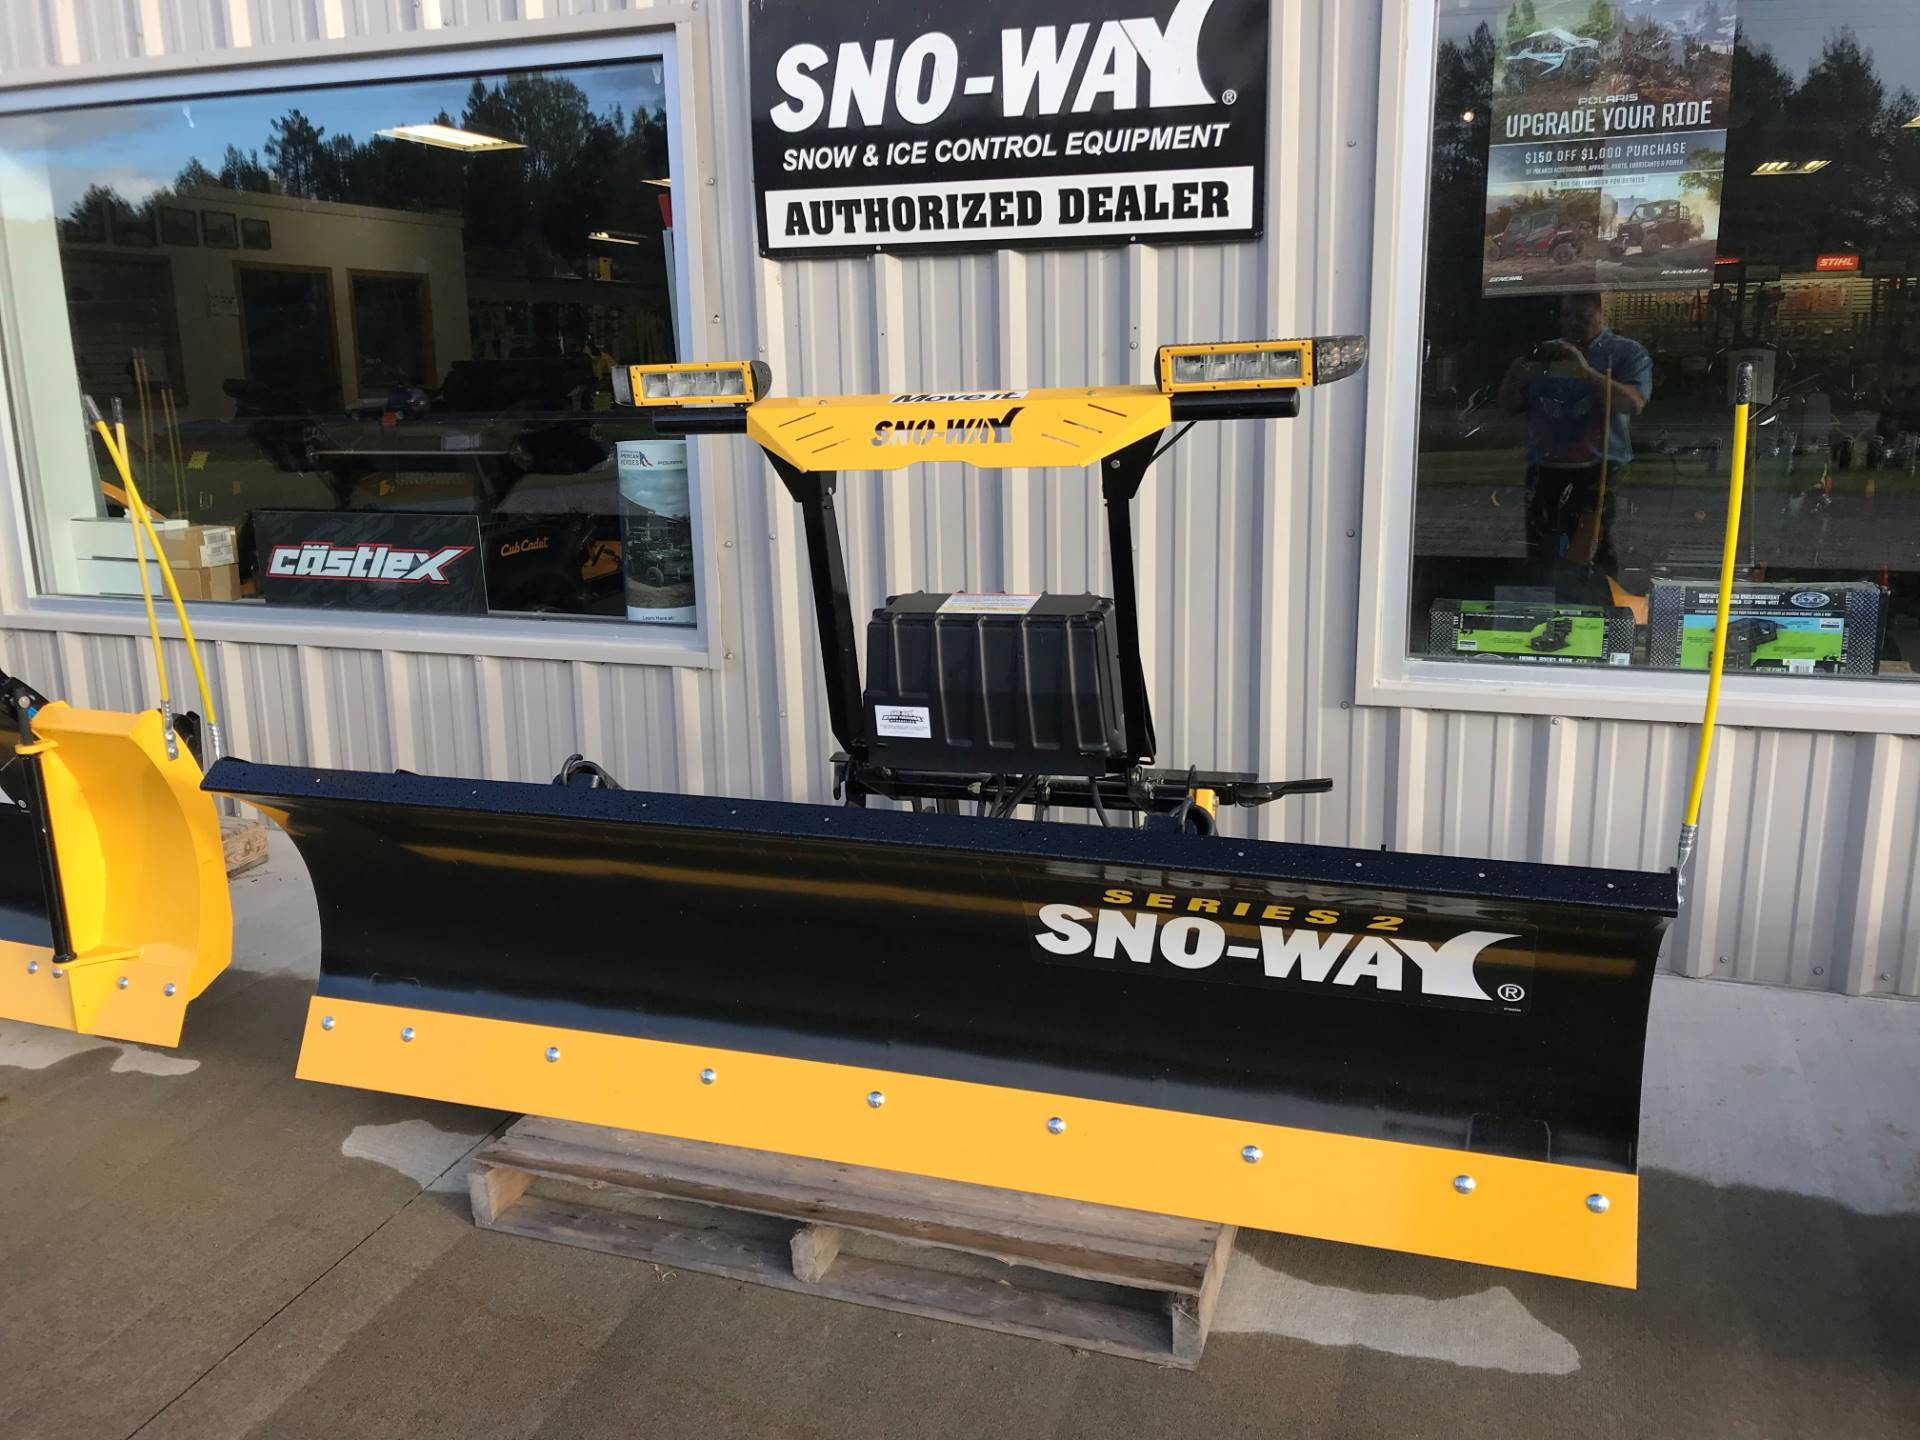 2020 SNO-WAY SNO-WAY in Hillman, Michigan - Photo 1